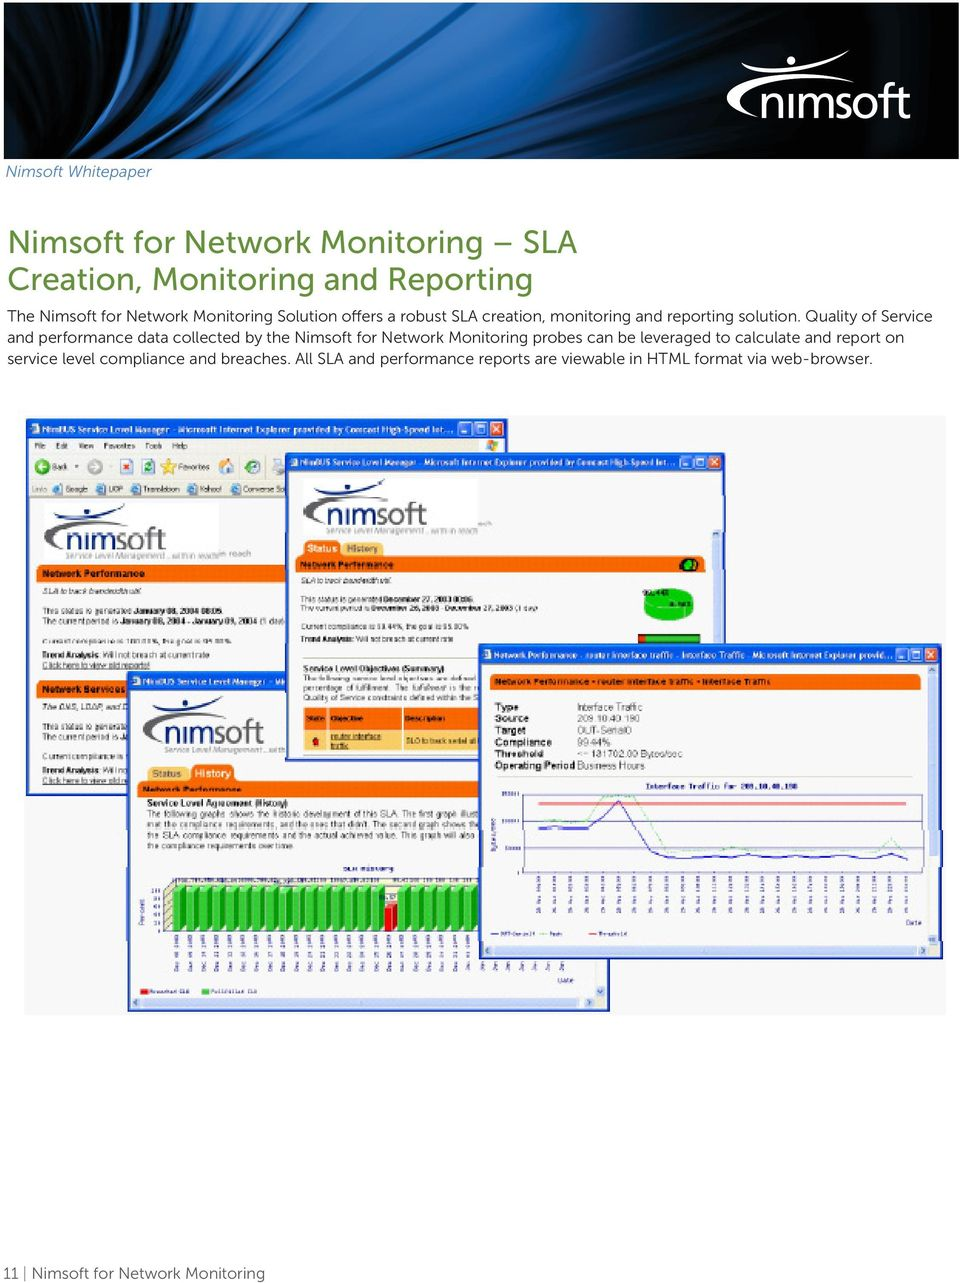 Quality of Service and performance data collected by the Nimsoft for Network Monitoring probes can be leveraged to